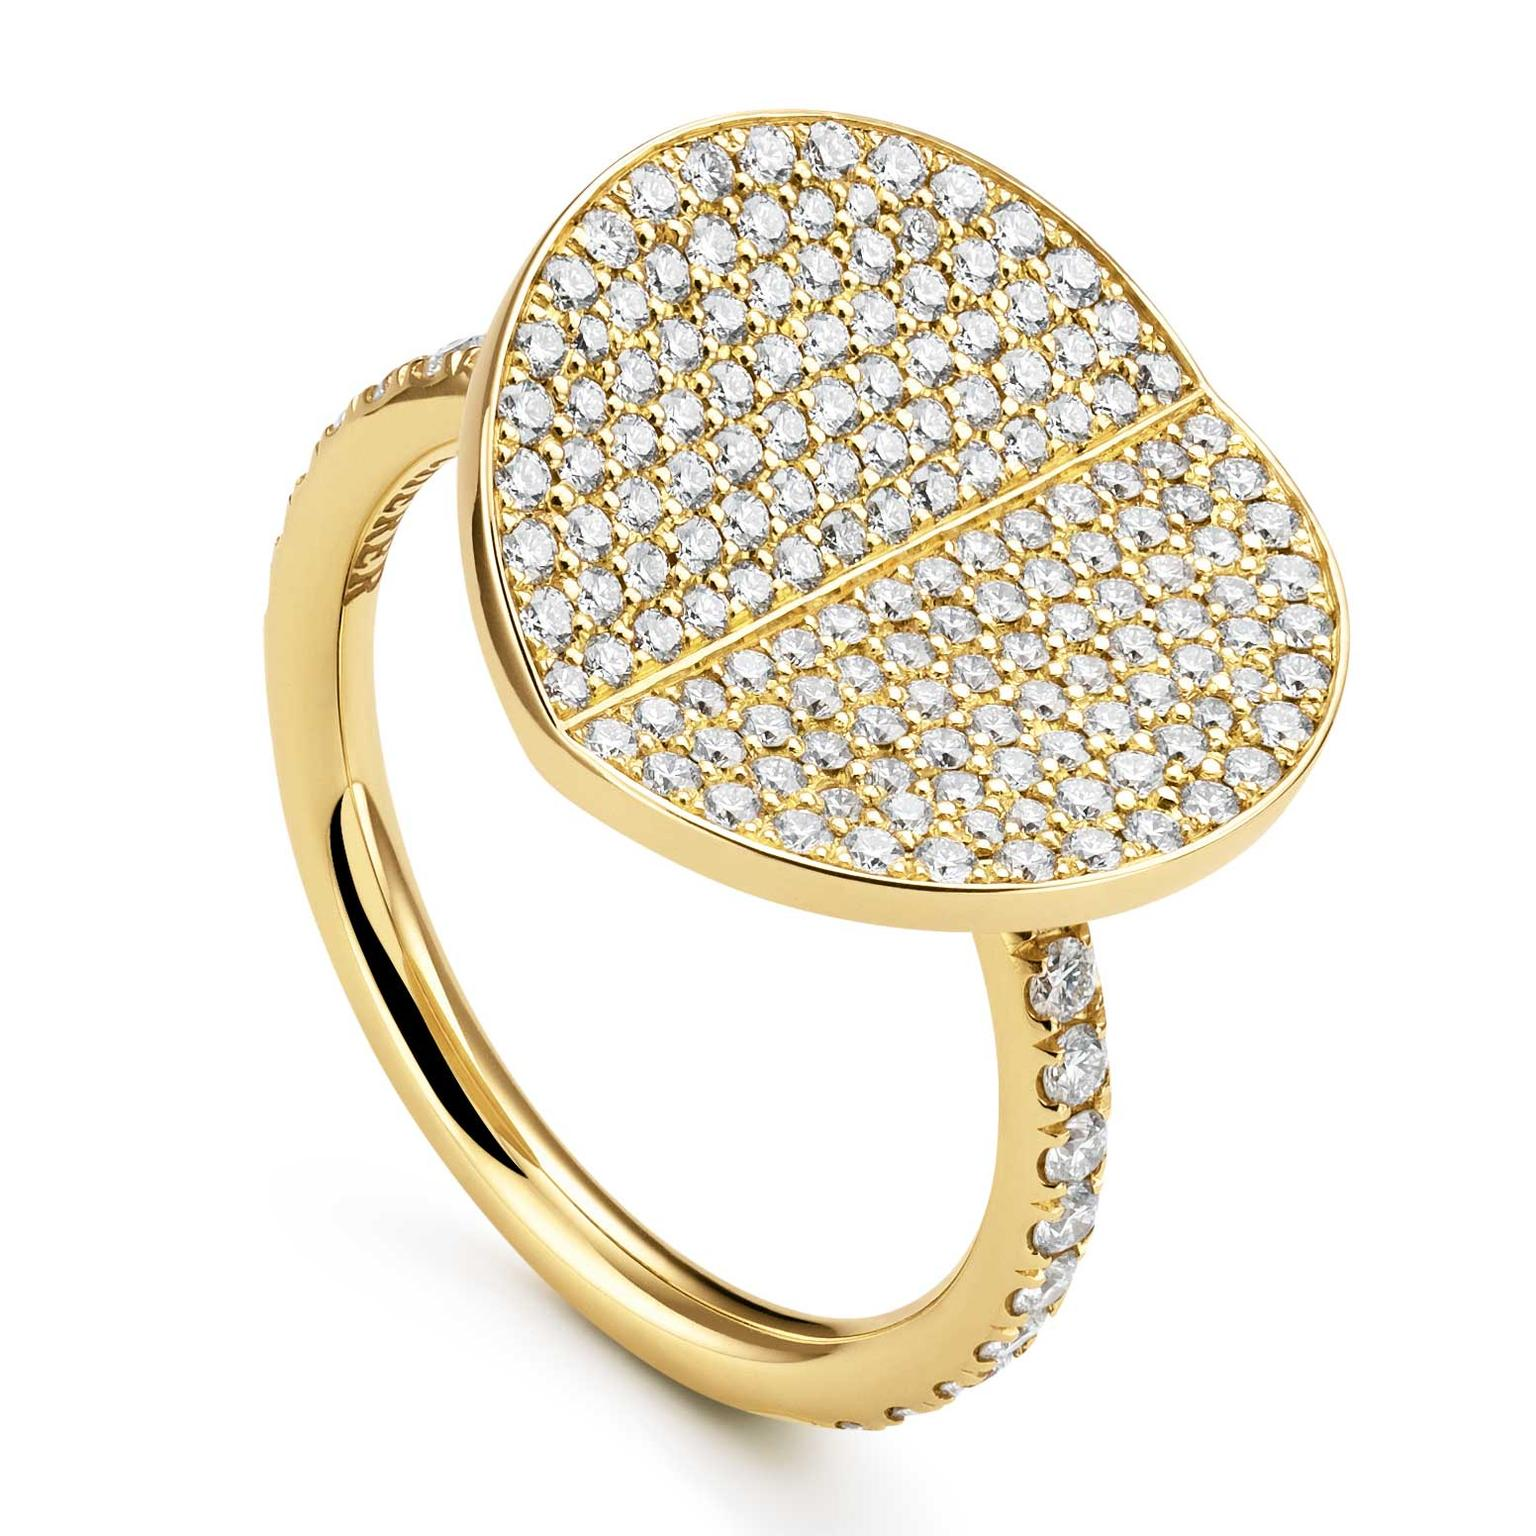 Large Bucherer B Dimension ring with diamonds in yellow gold Price £3500